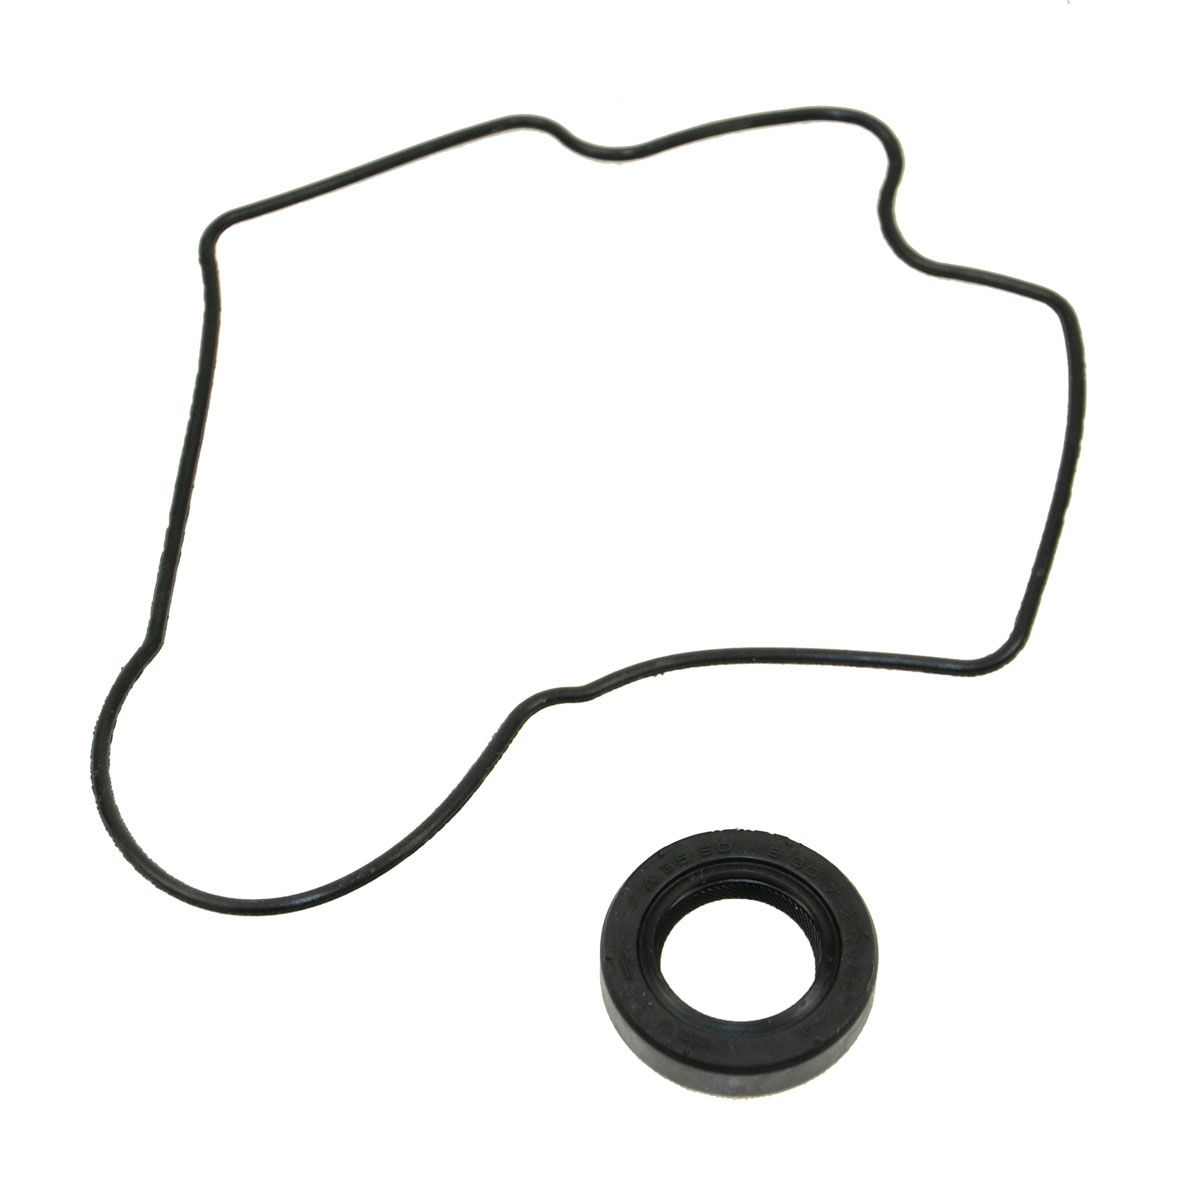 Oil Pump Seal Gasket Kit Set For Toyota Camry Solara